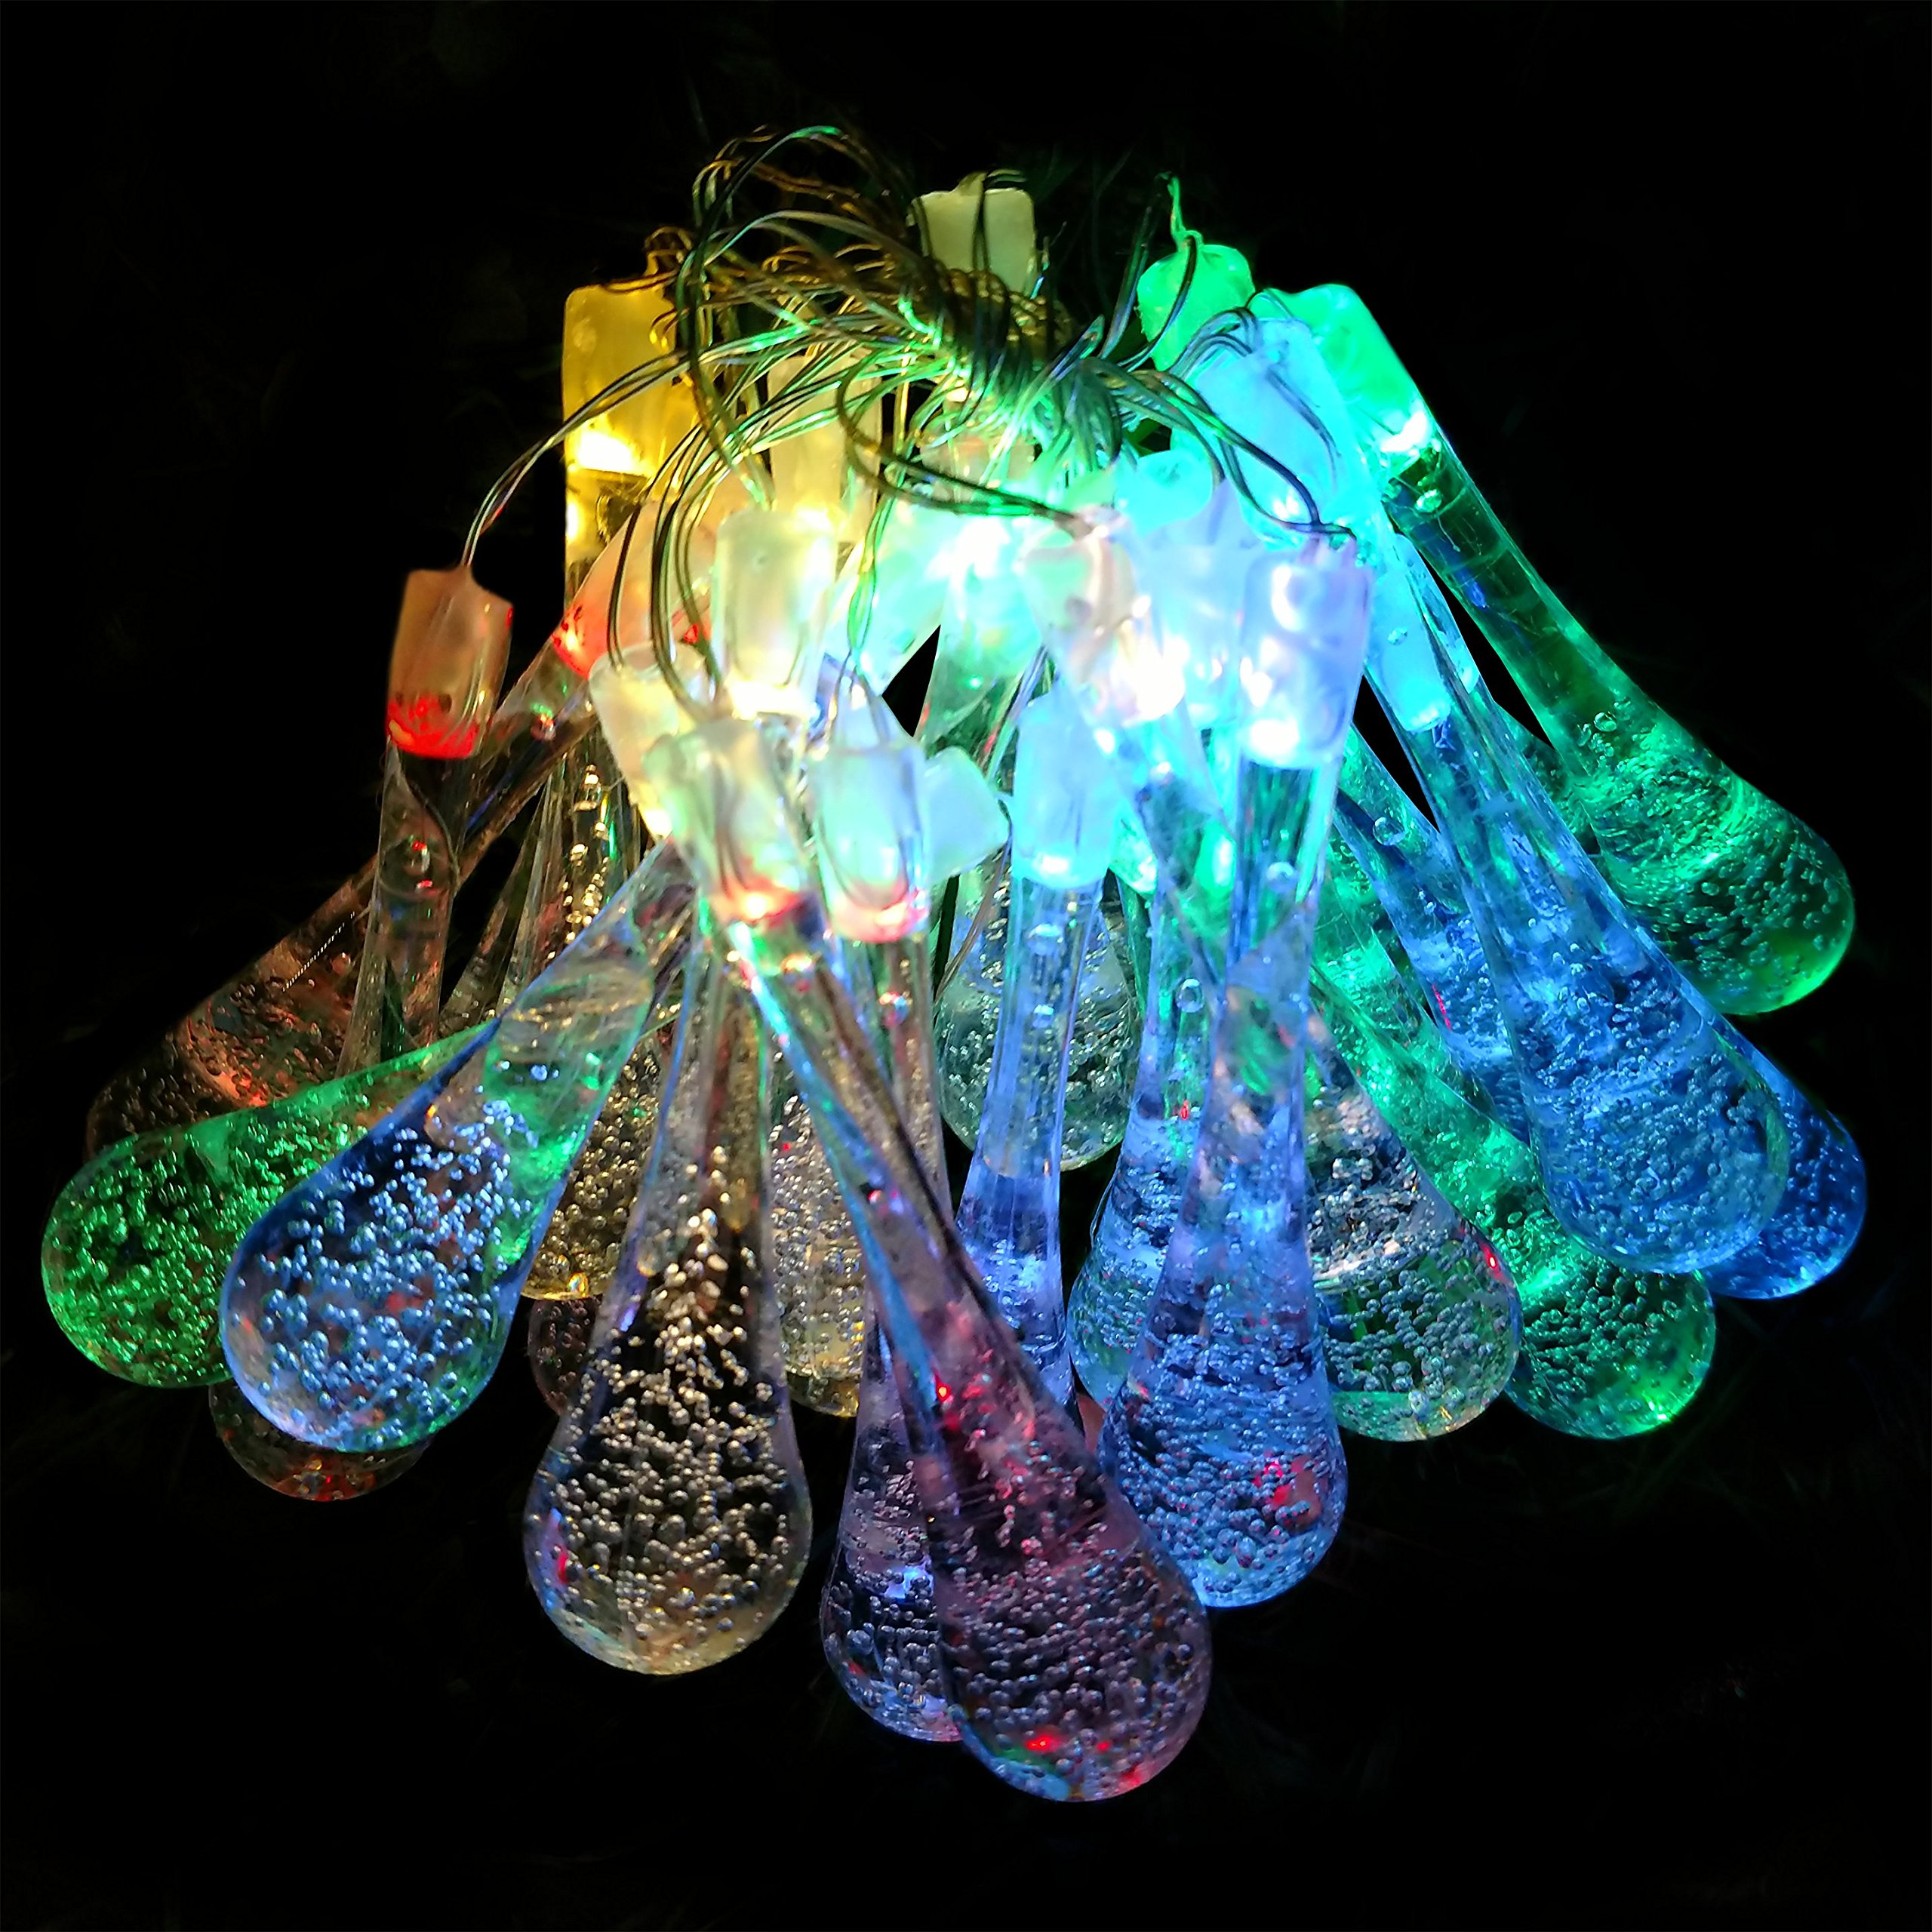 Hometown Evolution, Inc. Solar Powered Water Drop String Lights - 30 LED Multi Colored, 8 Modes, Outdoor Waterproof for Gardens, Patios, Yards, Home, Parties and More